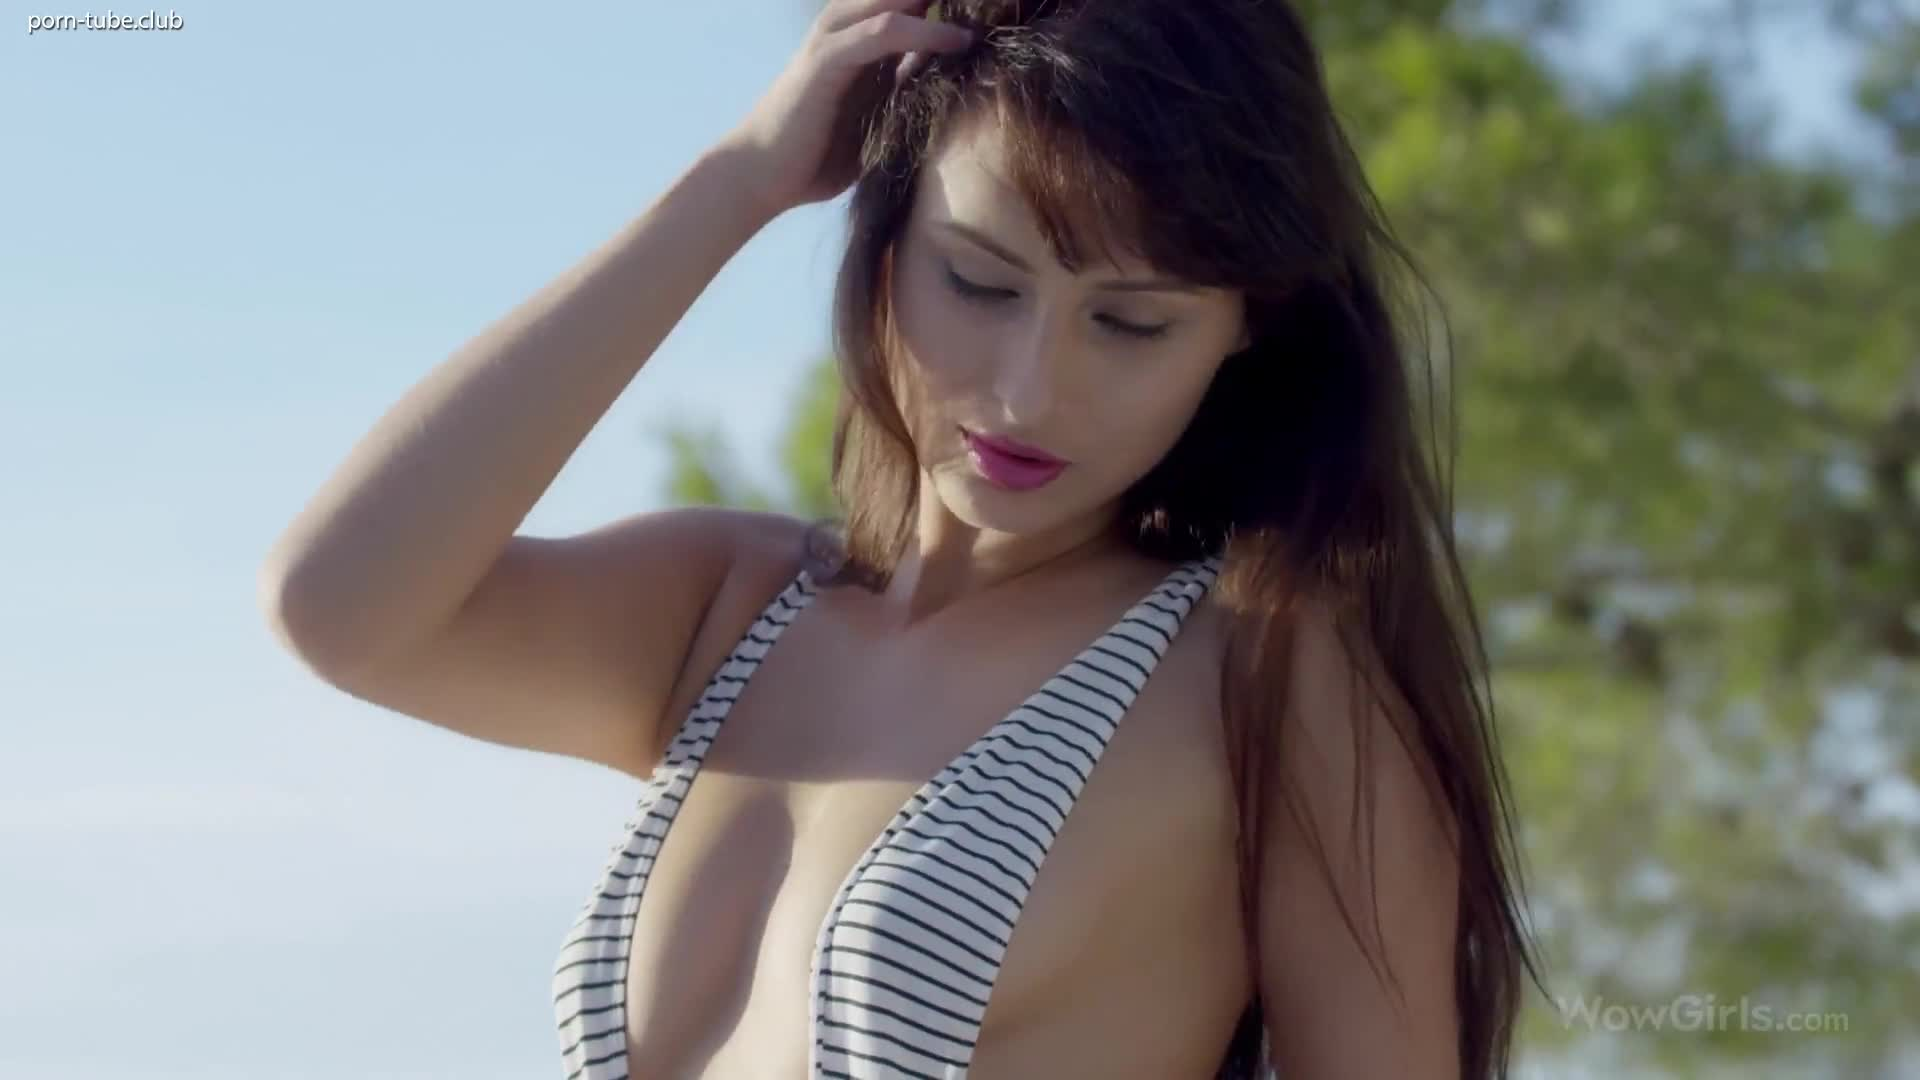 WowGirls - Yarina A Sunset Dream